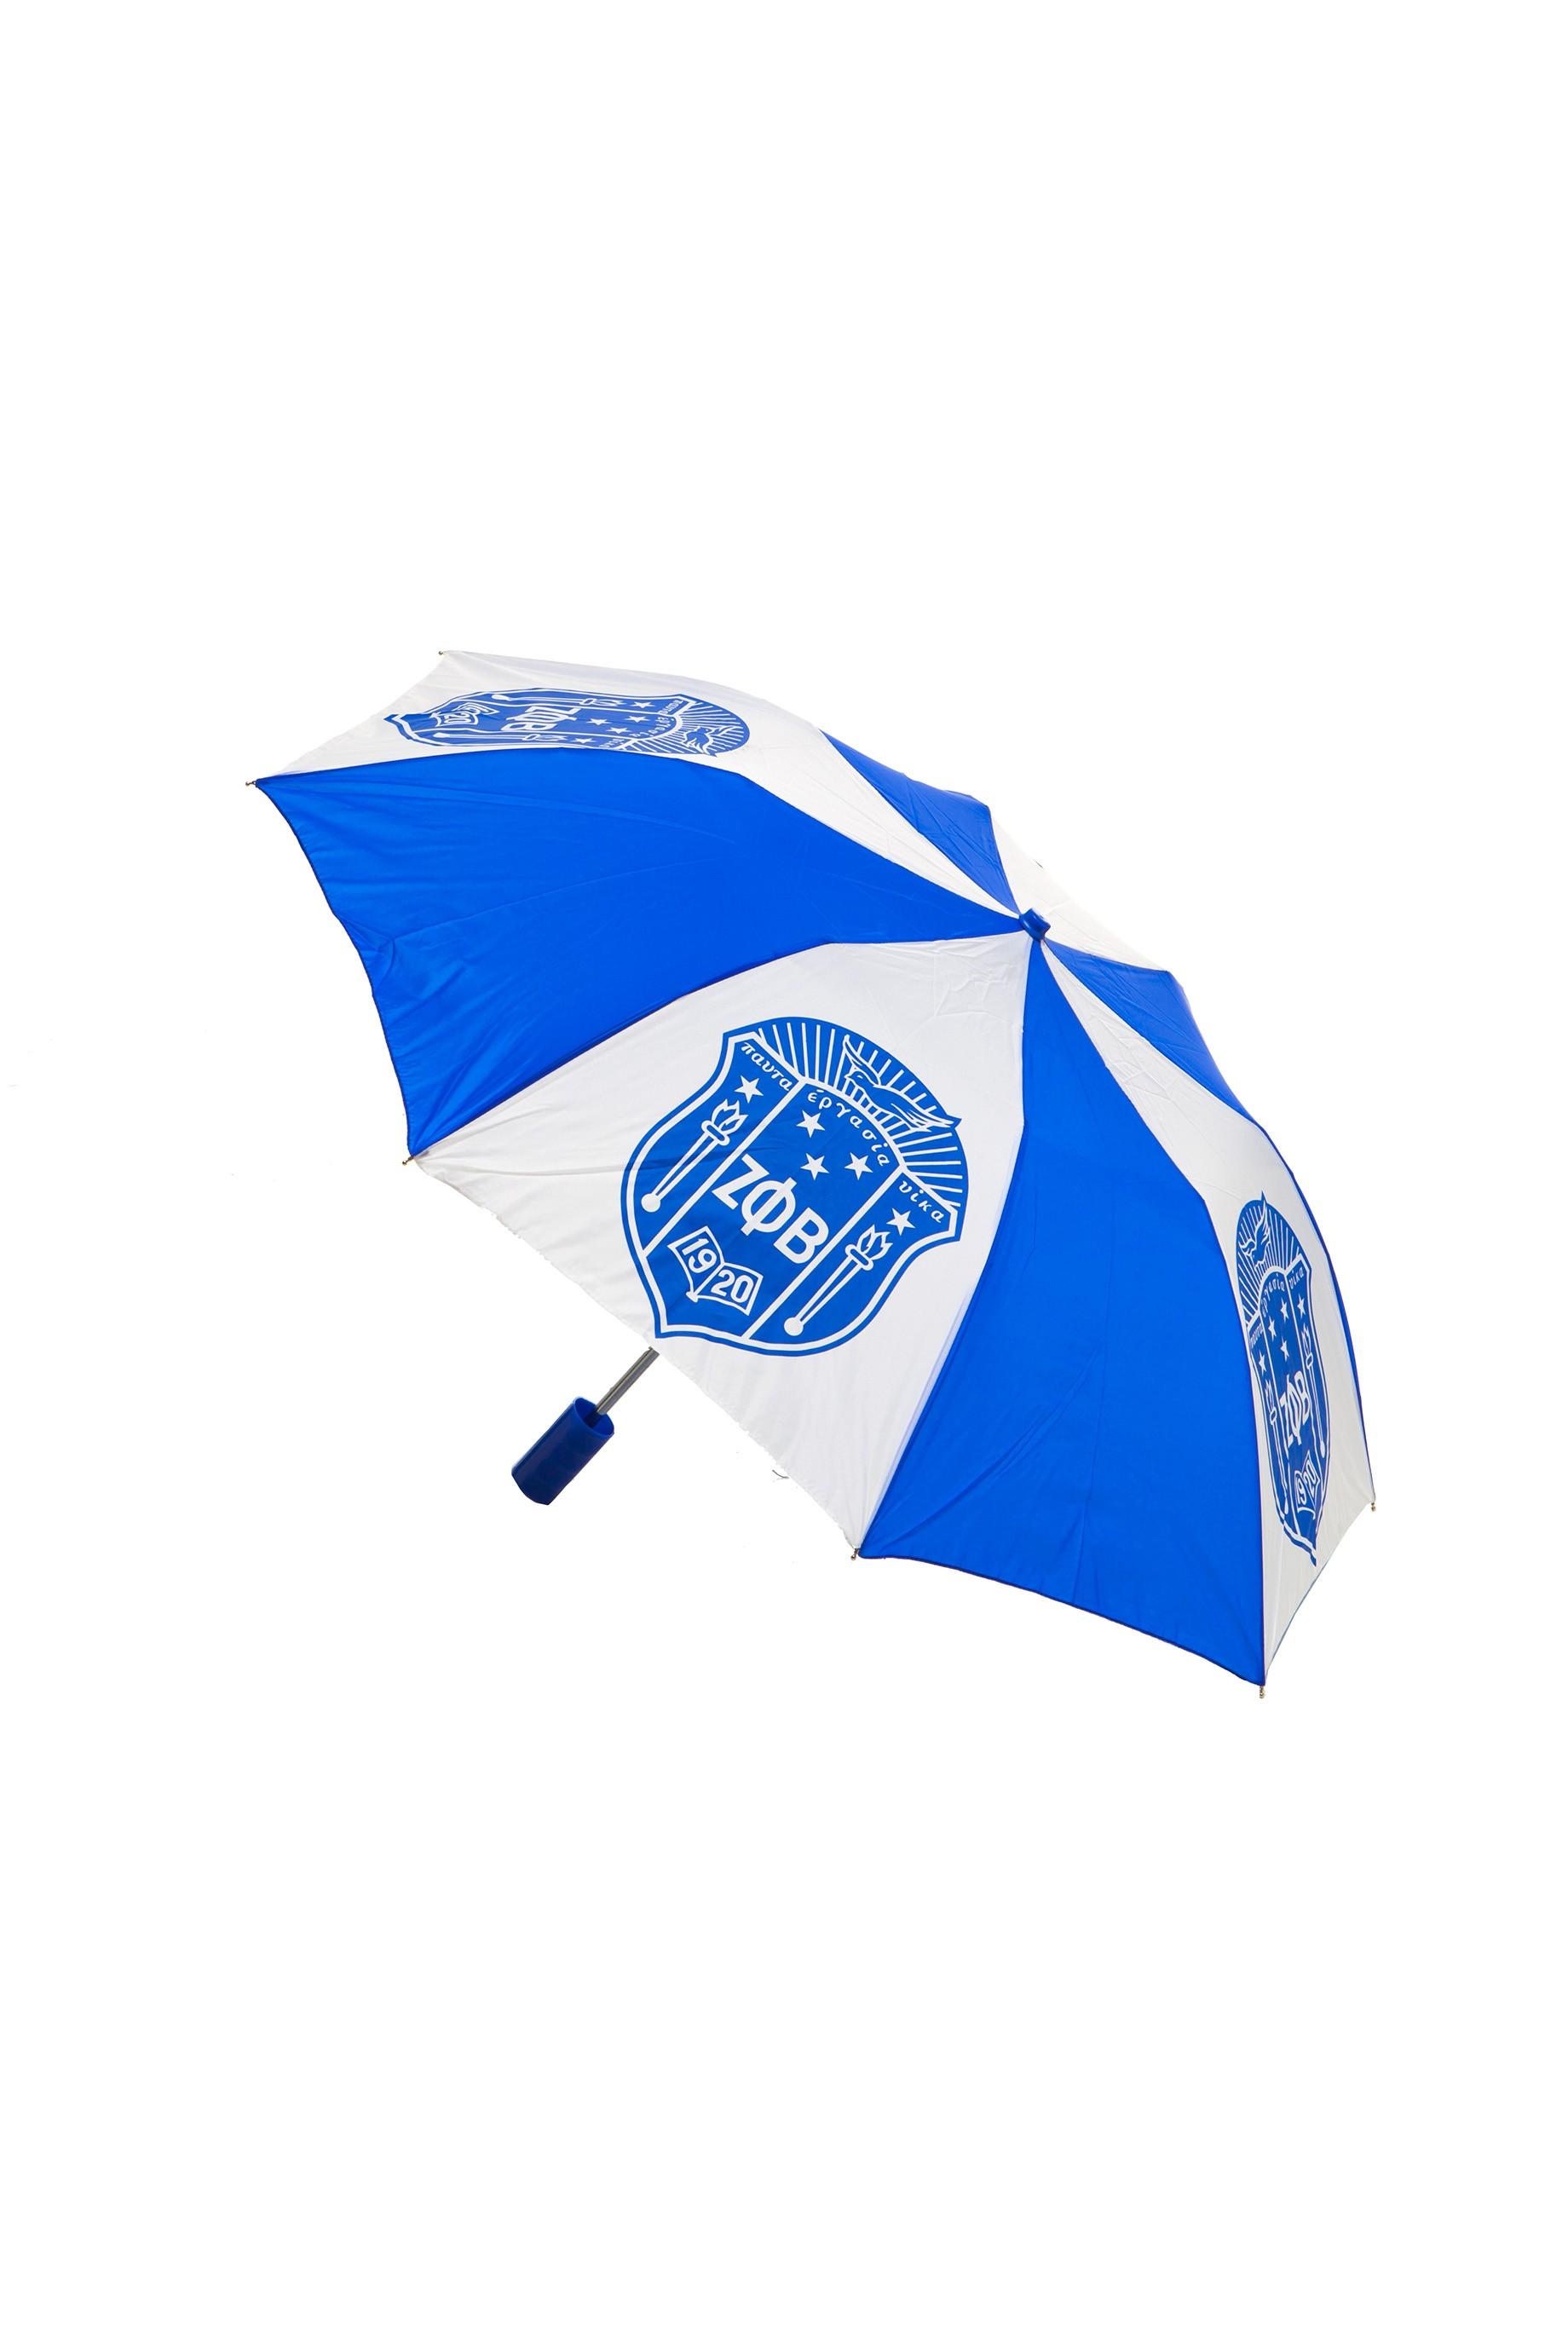 Folding Umbrella 10 Inch Shield-Zeta Phi Beta